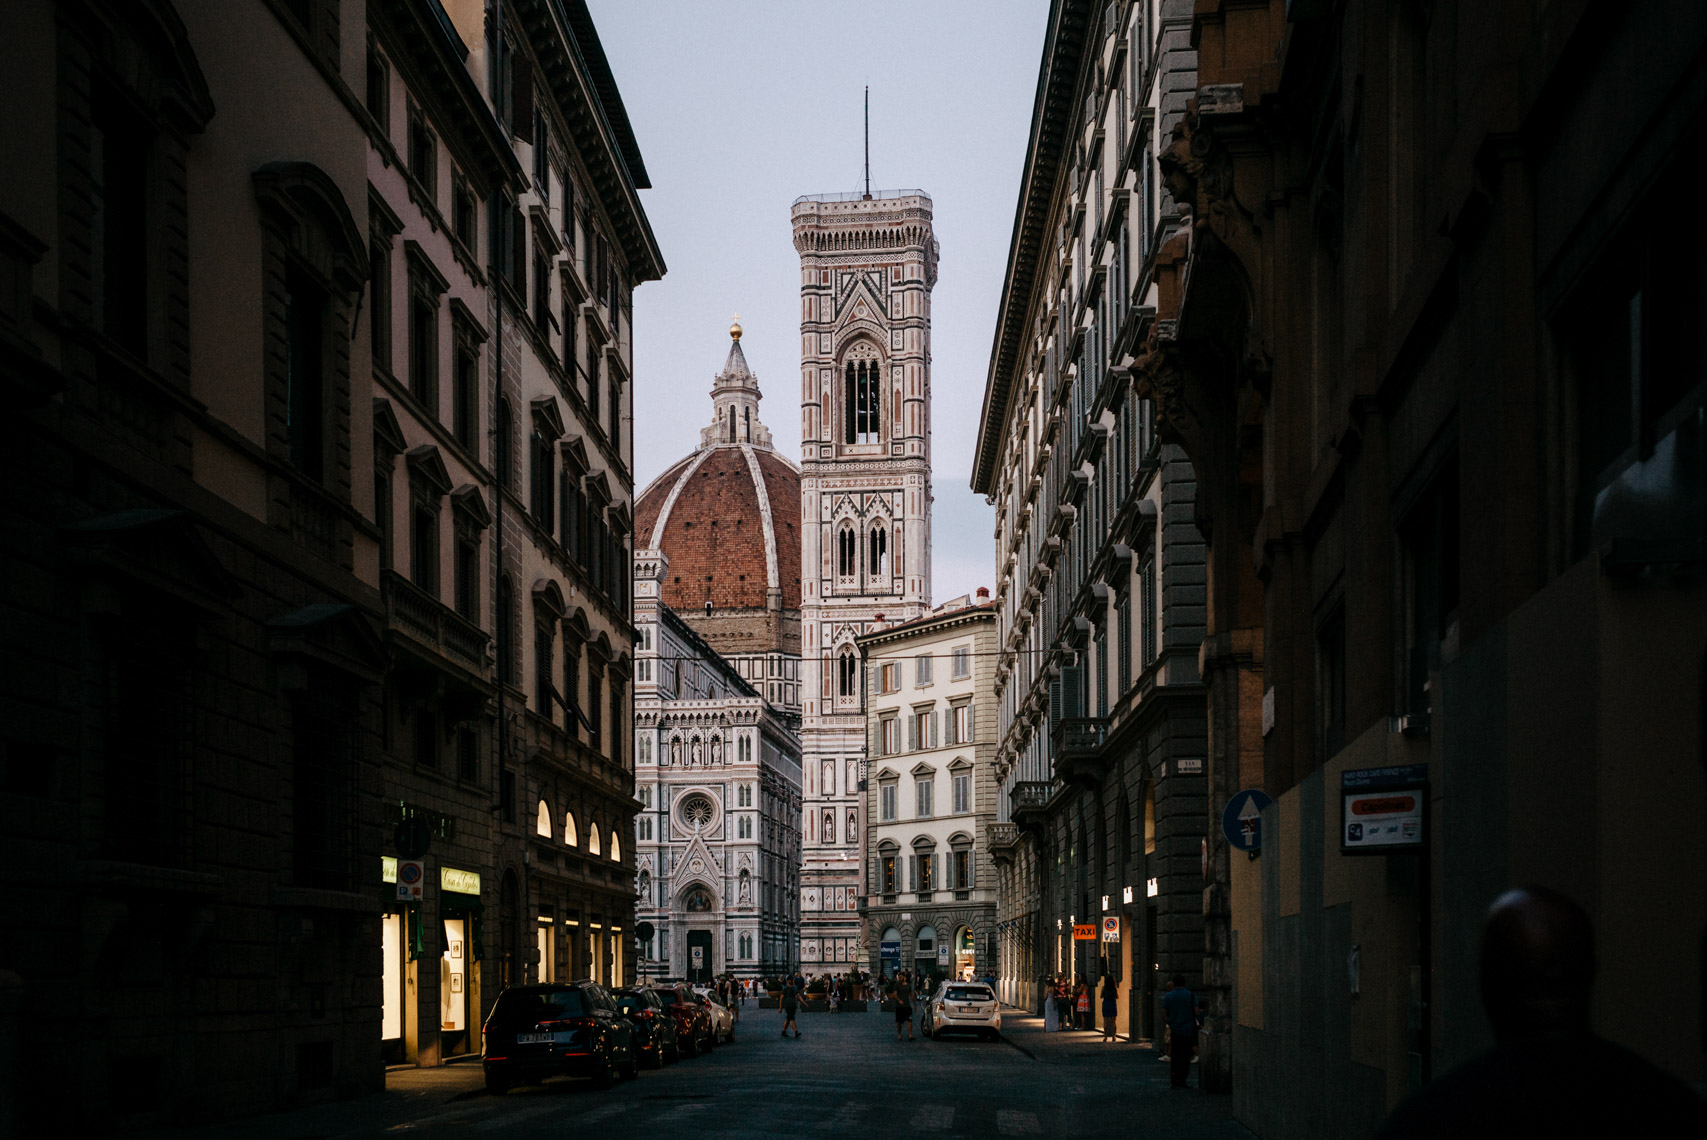 richard-schabetsberger-florenz-007